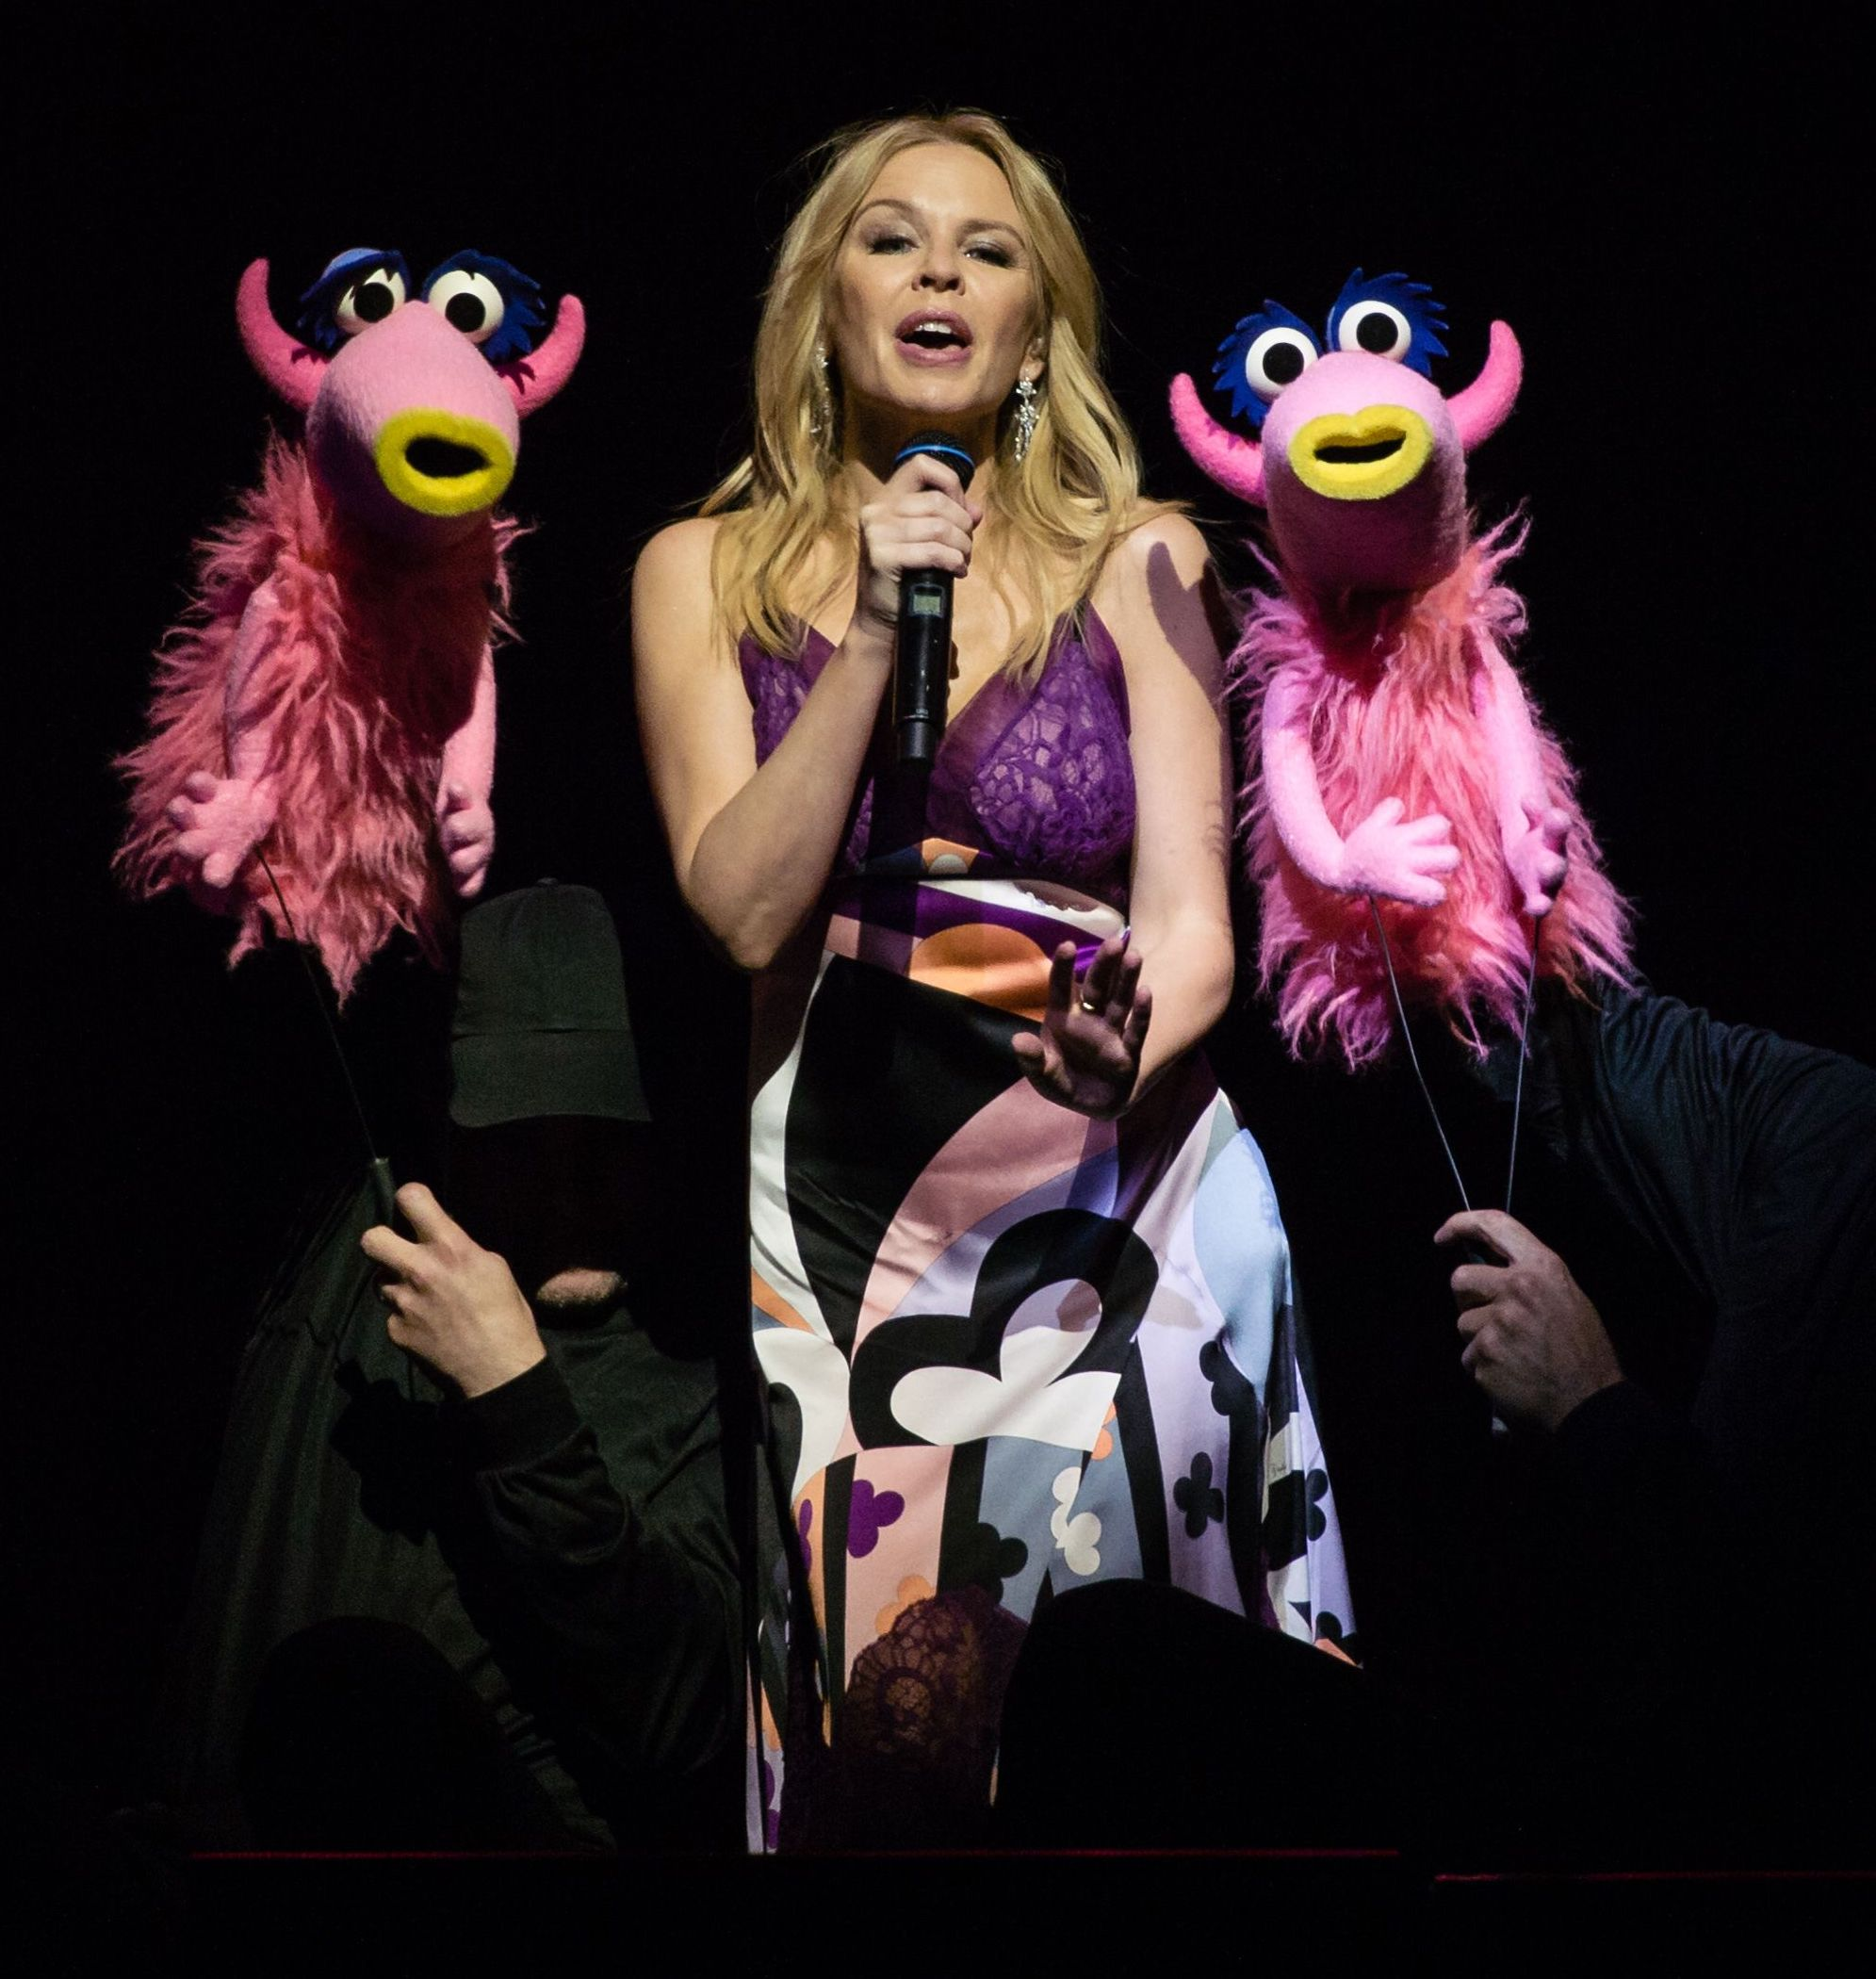 The Doctors Joins Kylie and the Muppets in Space - Blogtor Who